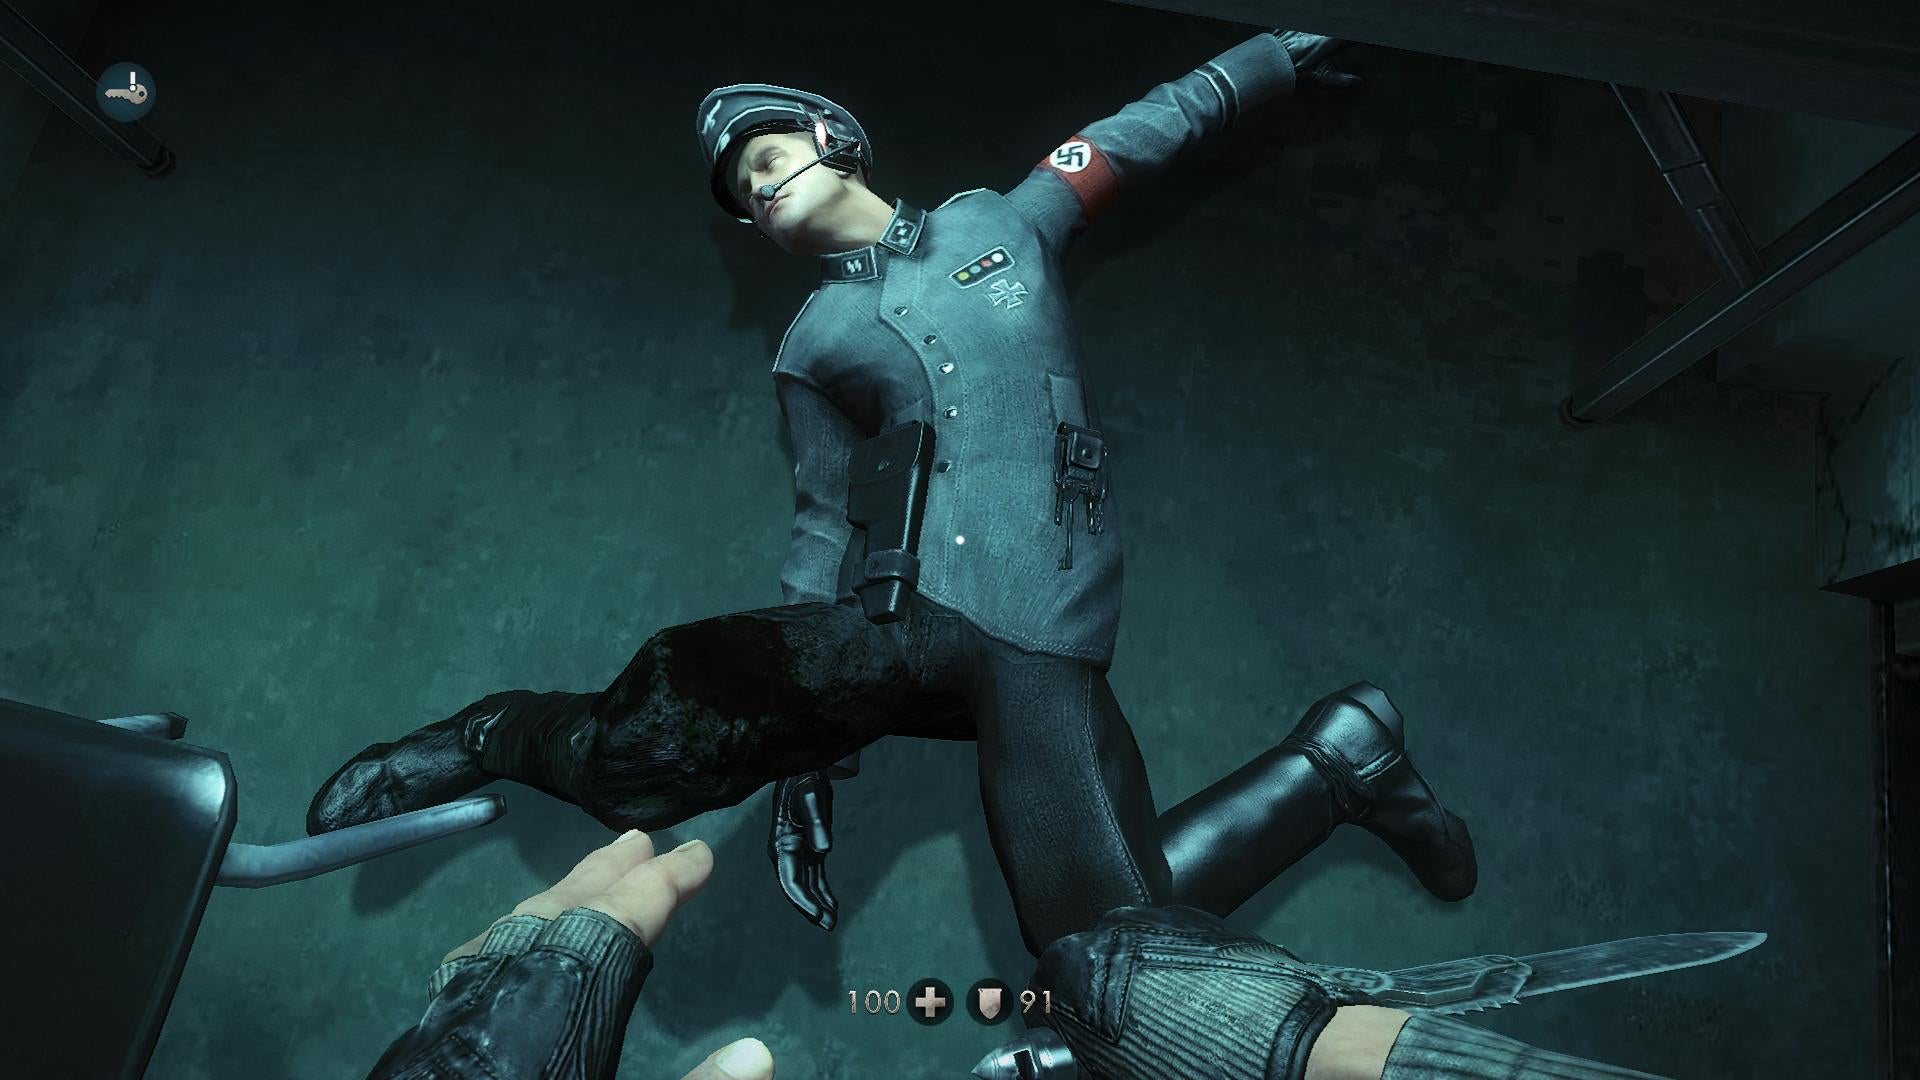 Wolfenstein: The New Order: The Kotaku Review